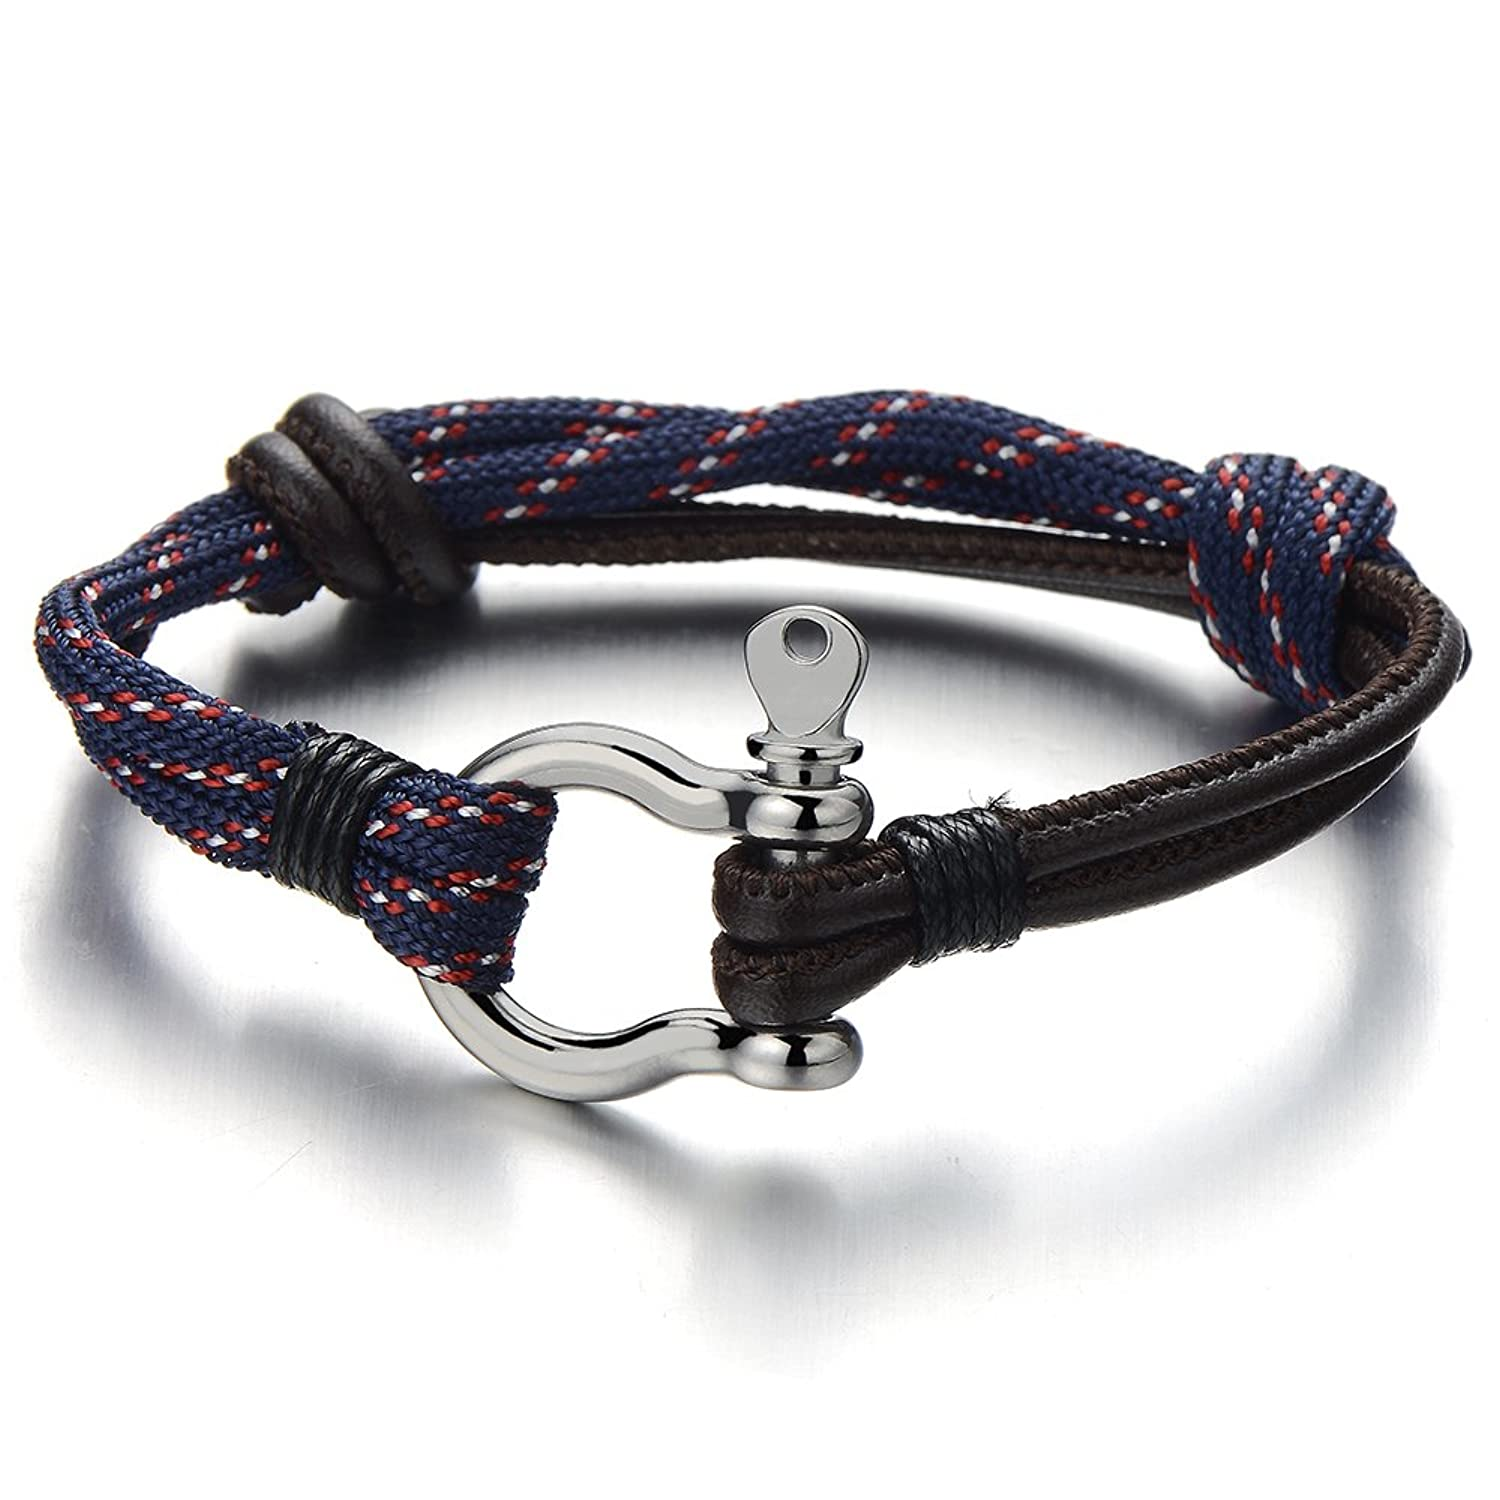 sailor rope youtube watch tutorial knot bracelet nautical